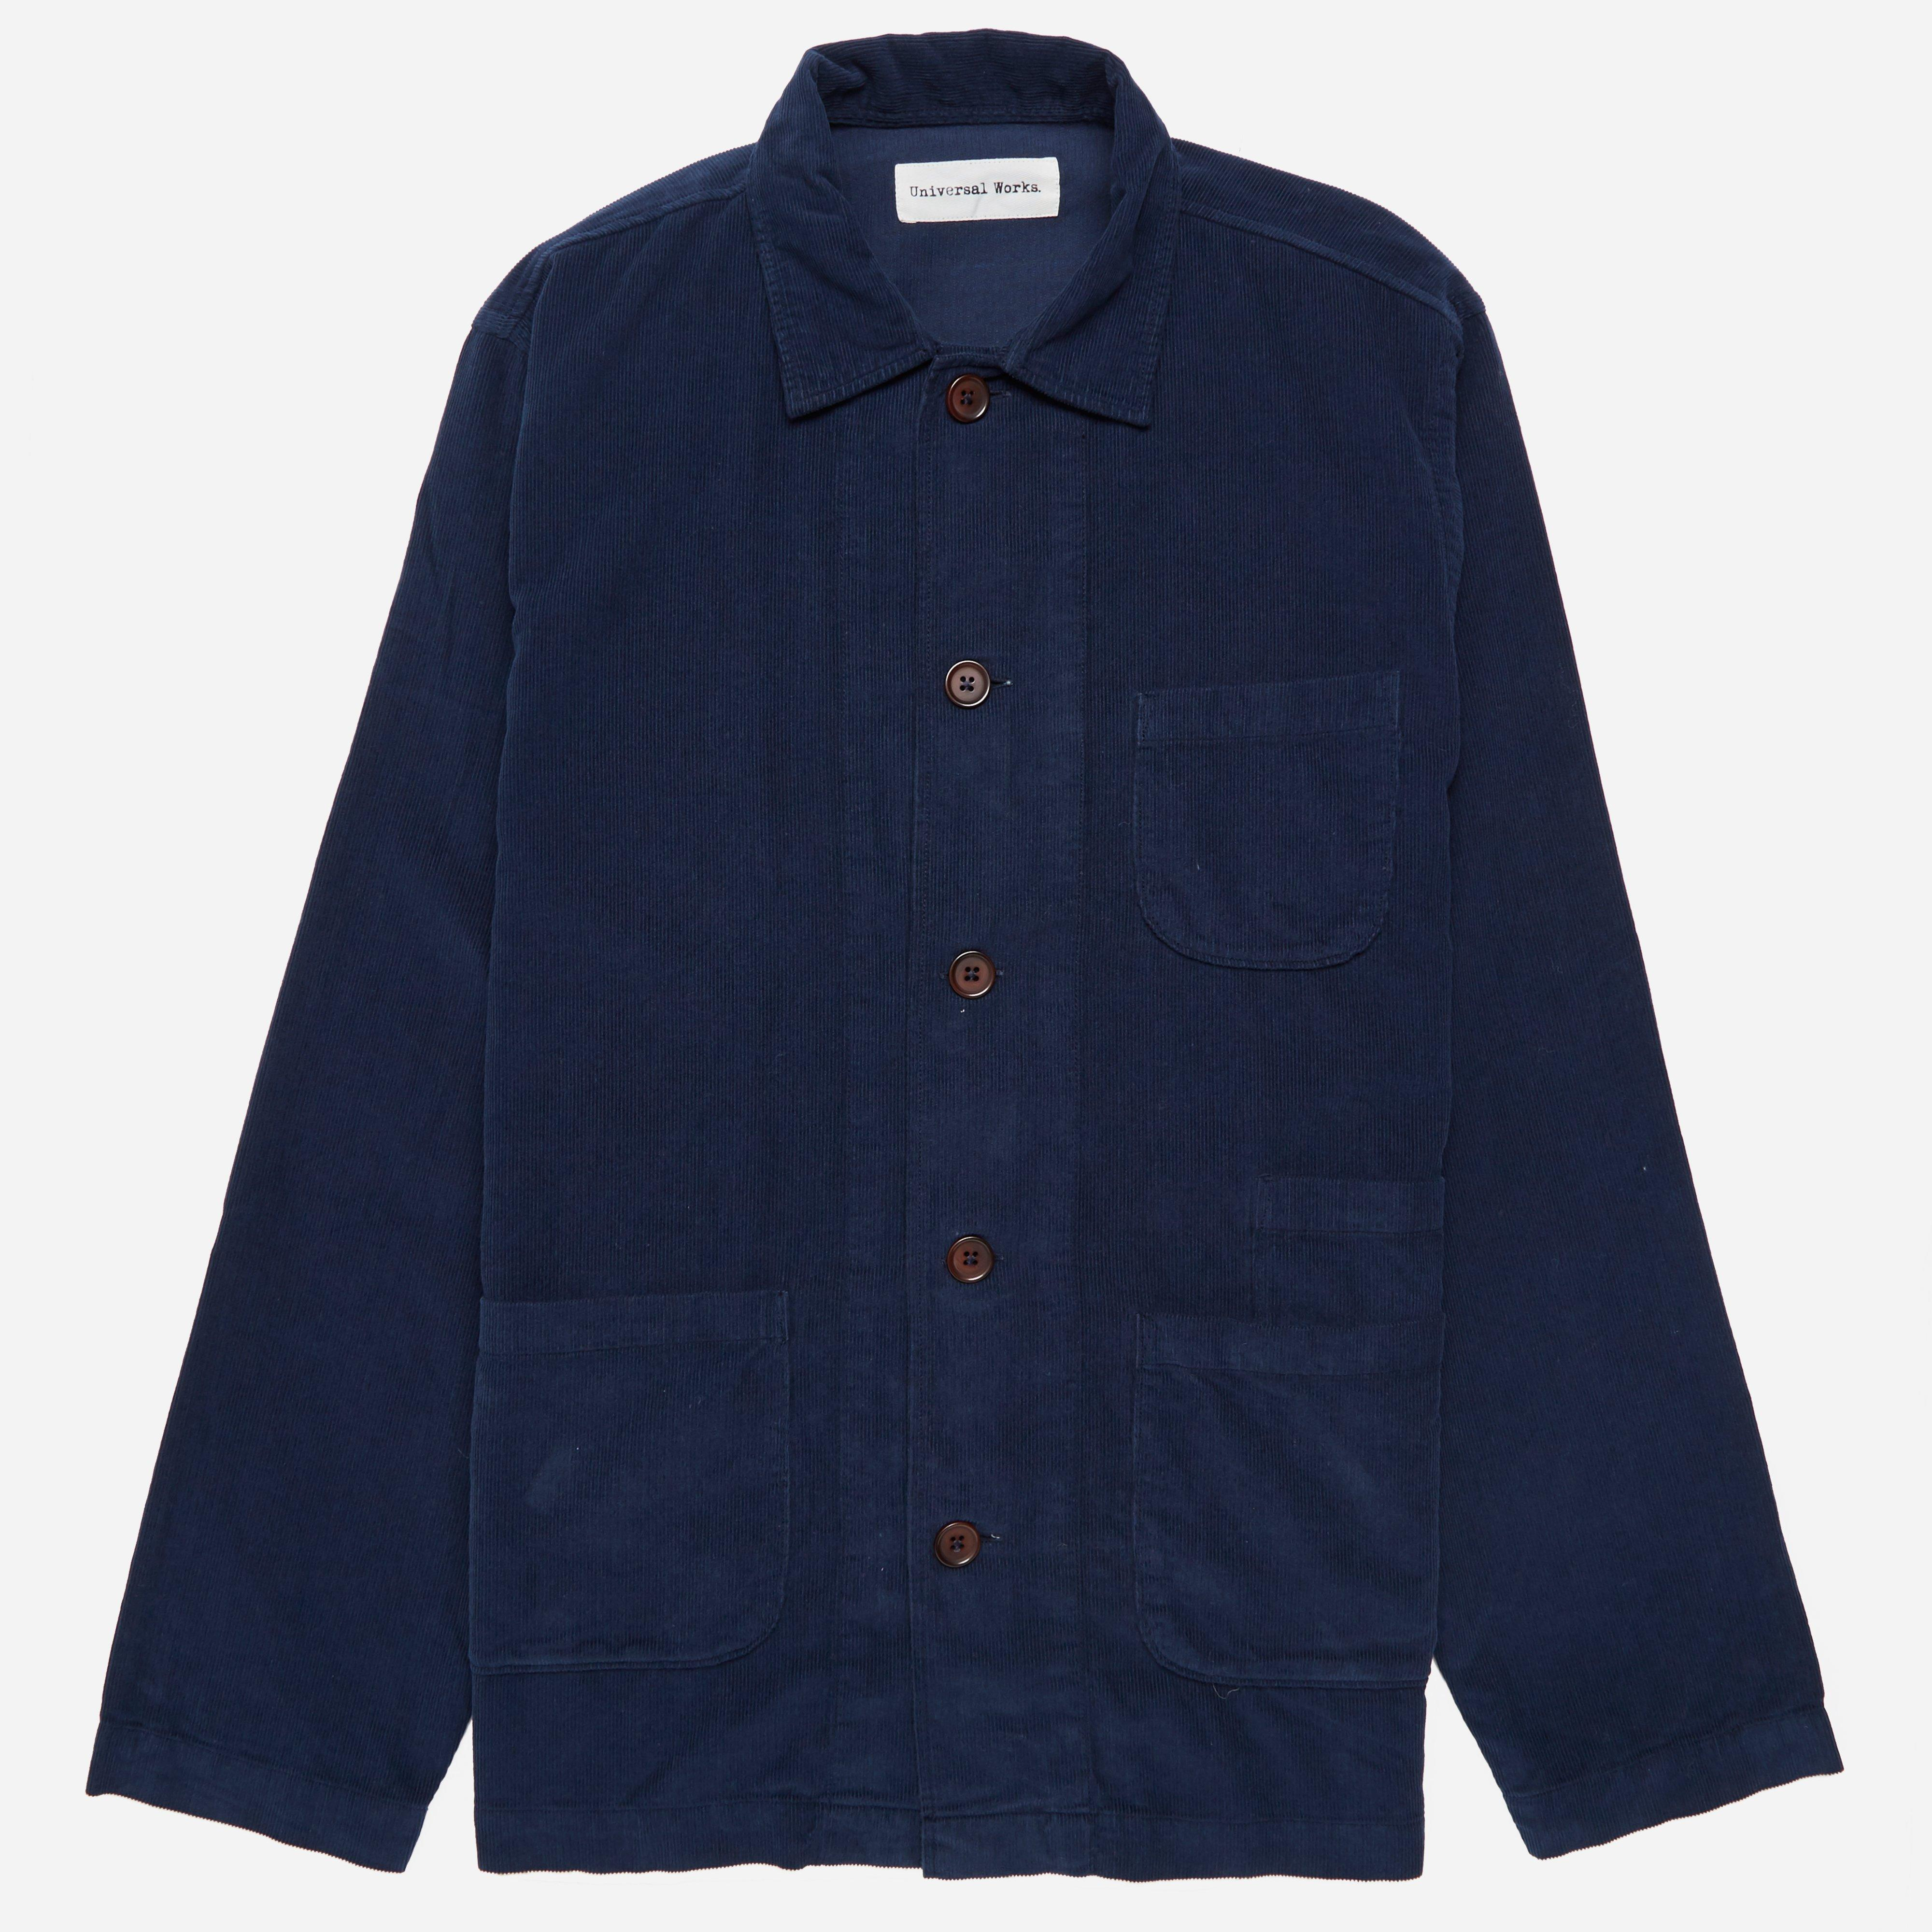 Universal Works Fine Cord Bakers Overshirt